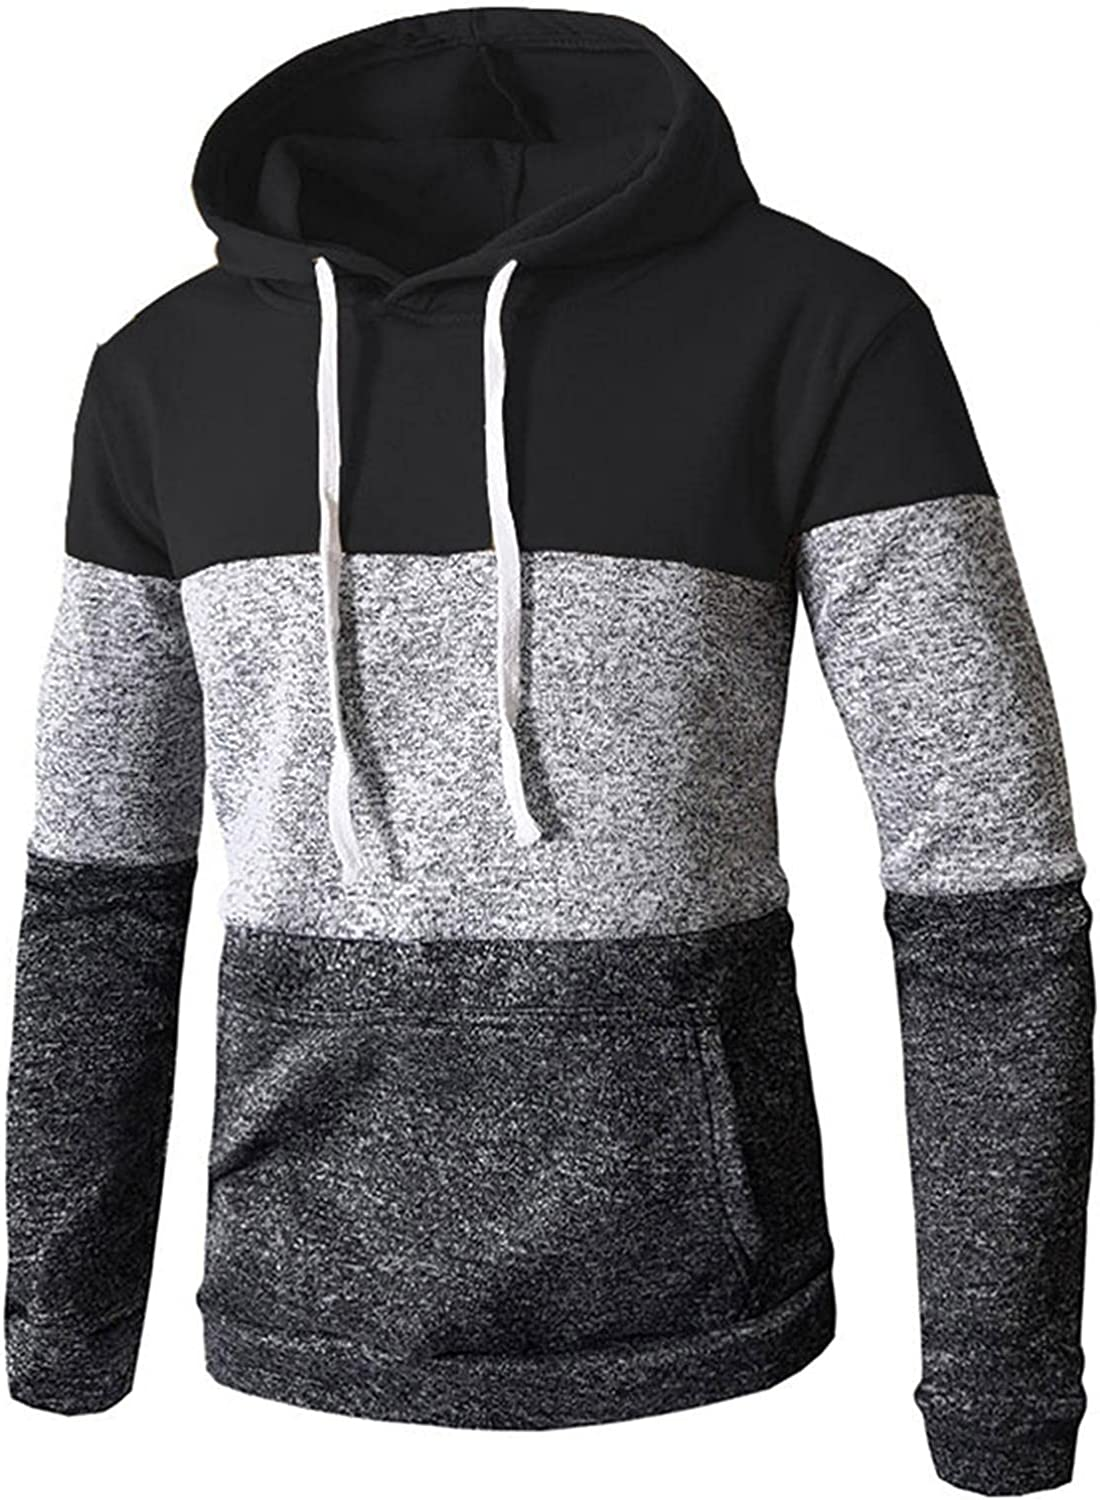 Mens Hooded Pullover Sweatershirts Novelty Patchwork Color Block Long Sleeve Hoodies Soft Cozy Sport Outwear Tops